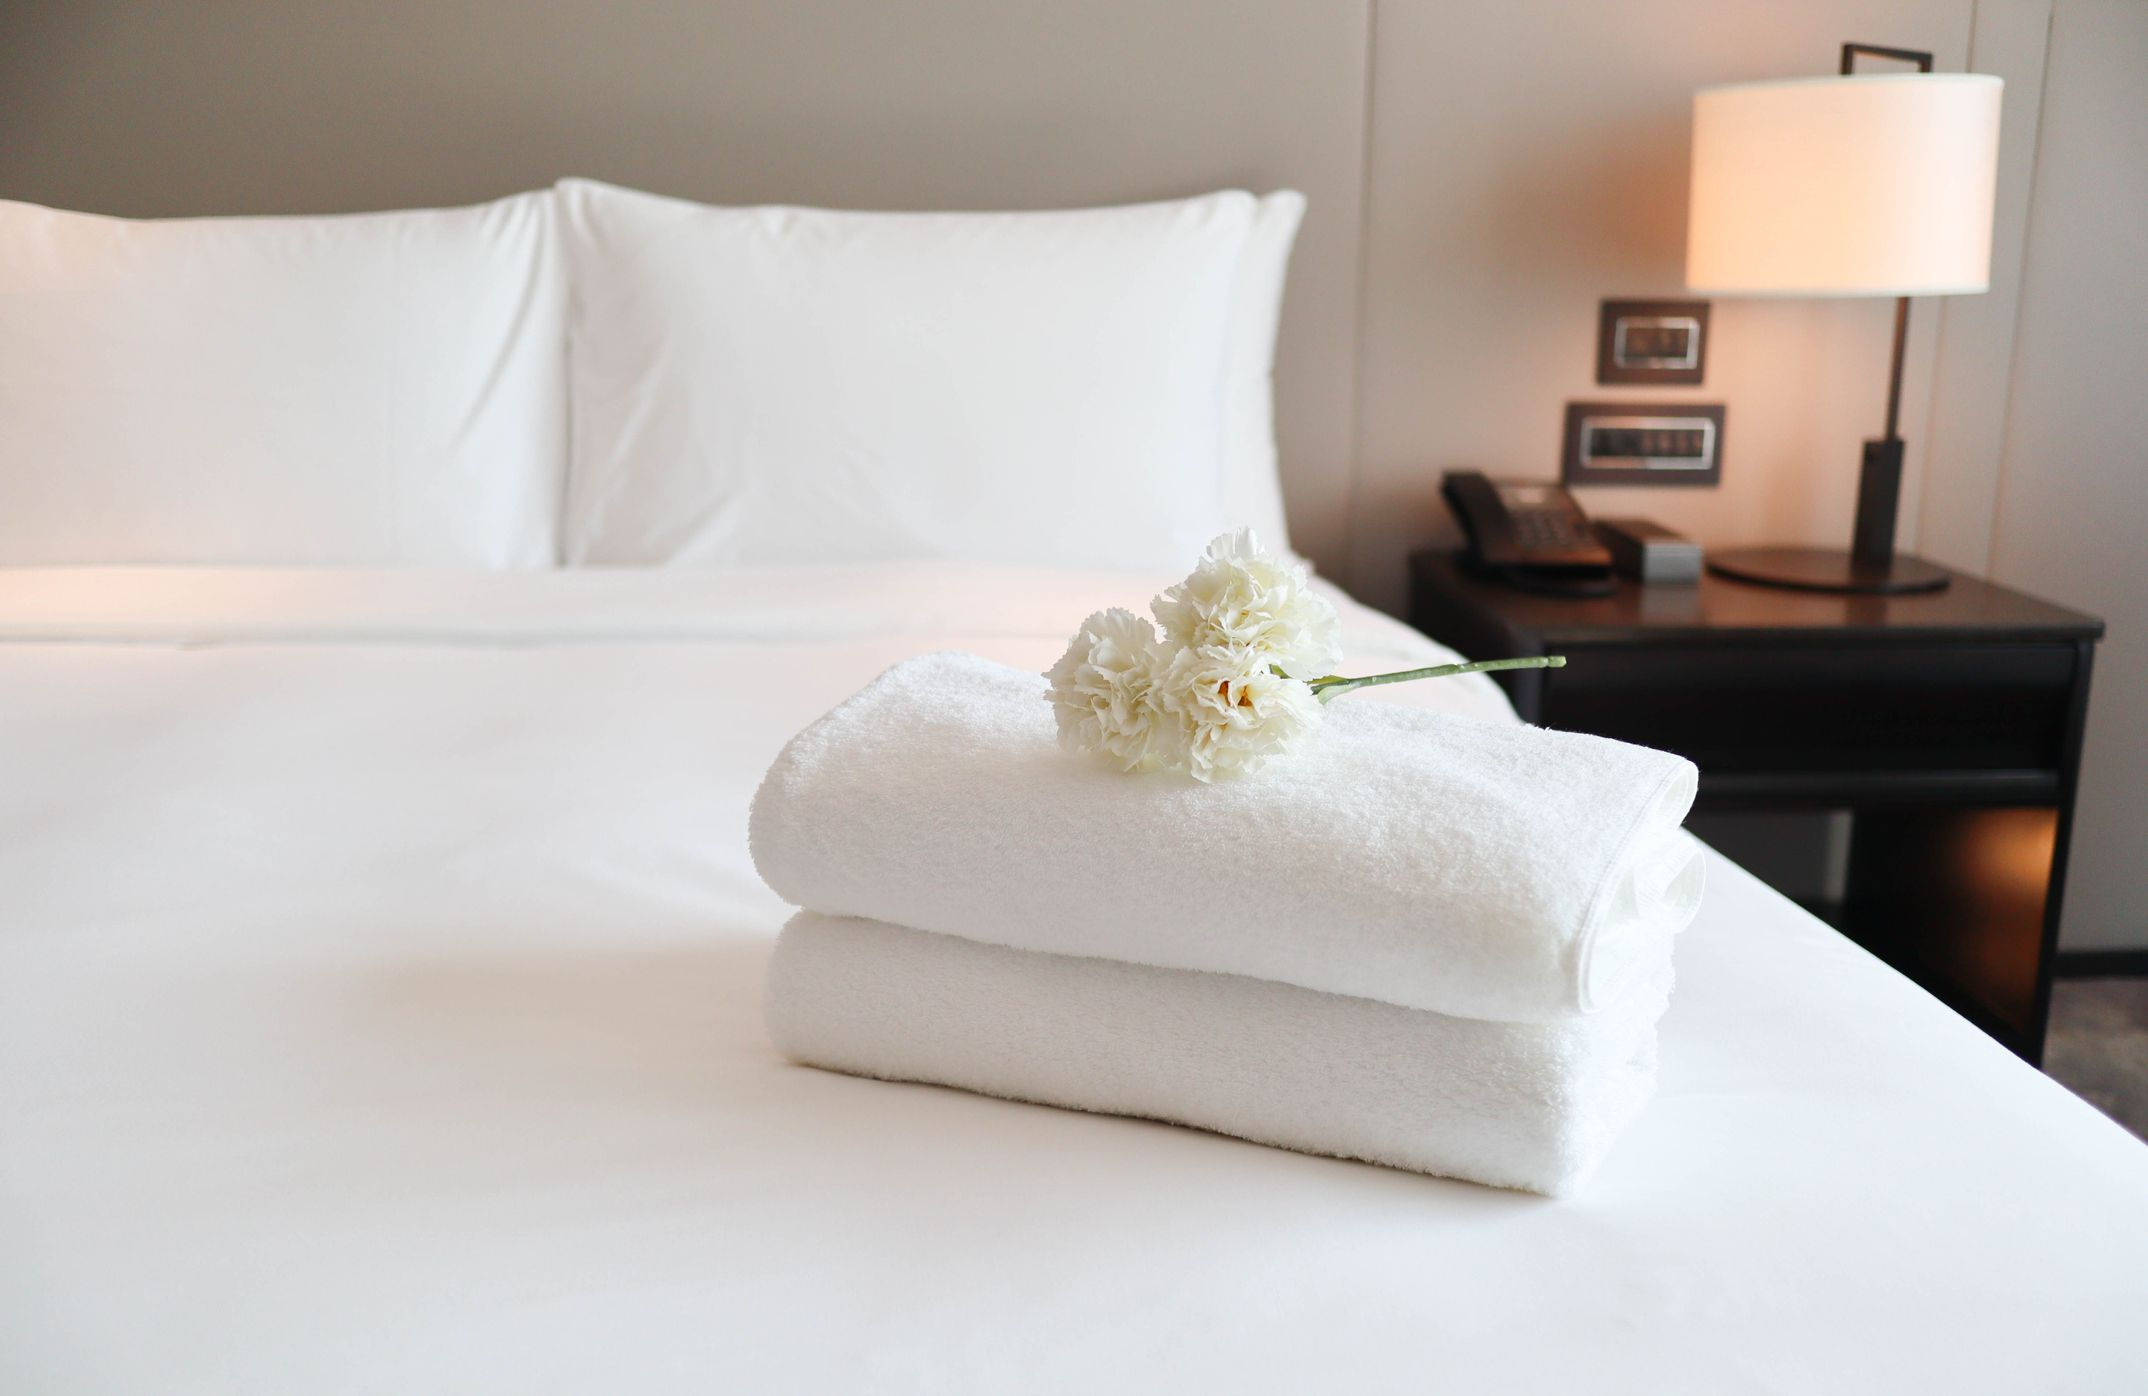 Plush white towels on a freshly made bed